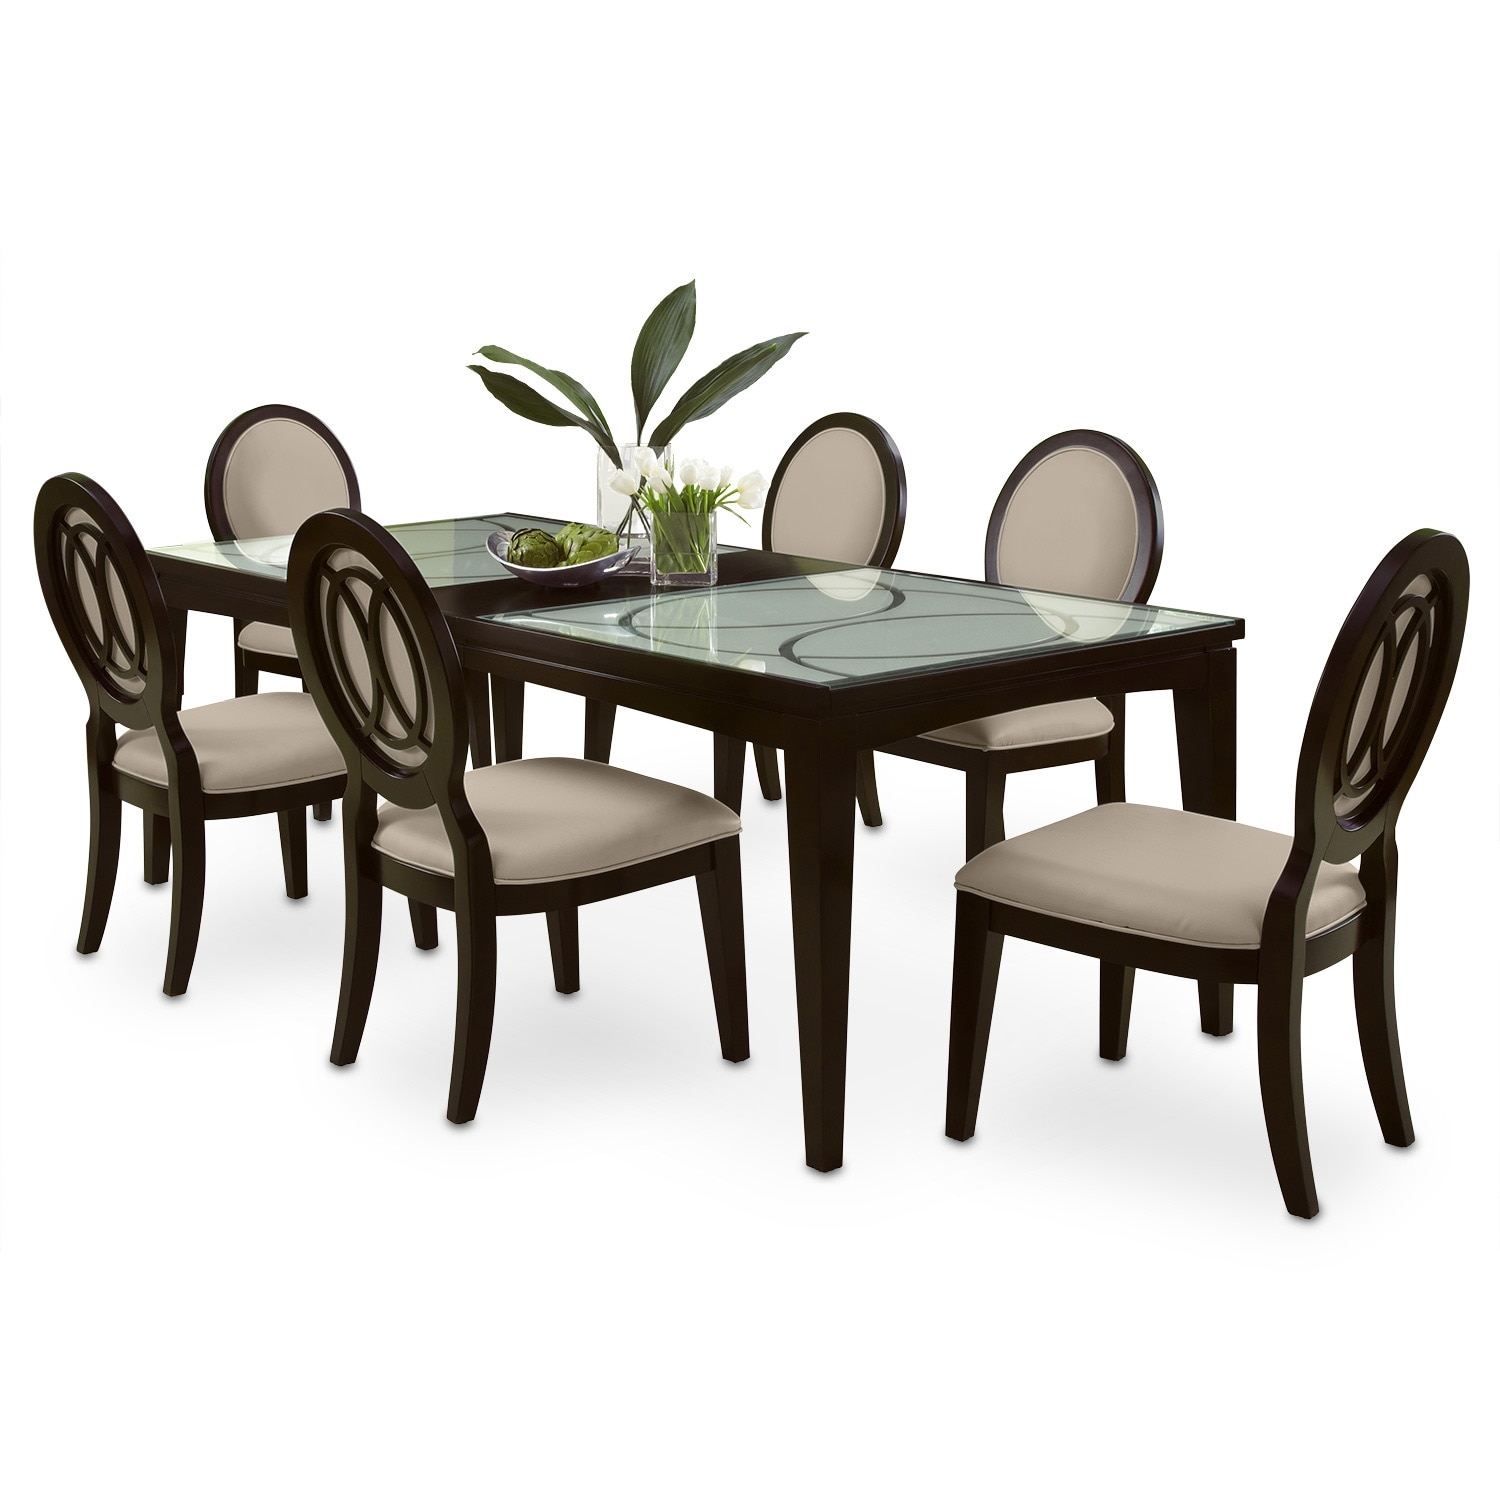 [Cosmo 7 Pc. Dining Room]